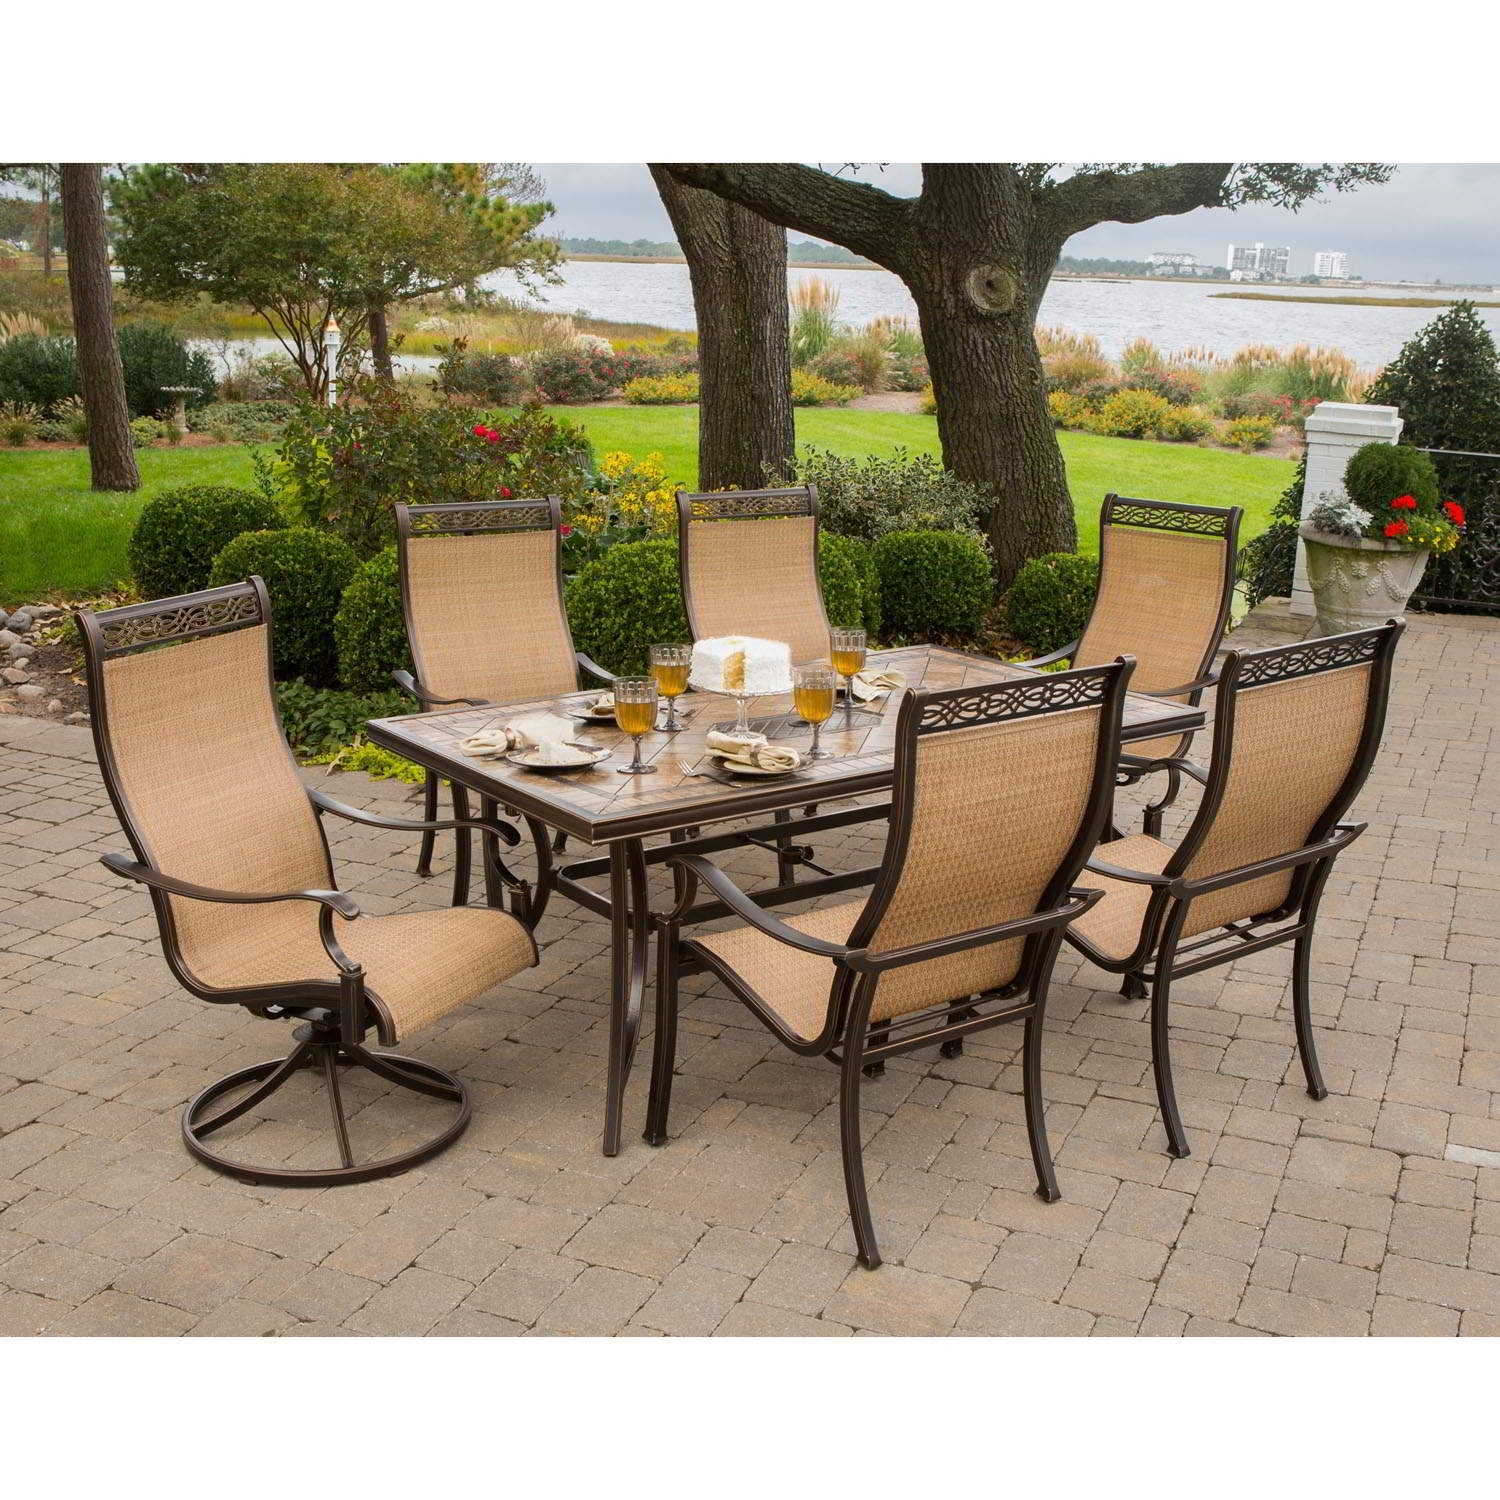 Popular Outdoor Patio Dining Furniture Monaco 7 Piece Dining Set Intended For Monaco Dining Sets (View 23 of 25)